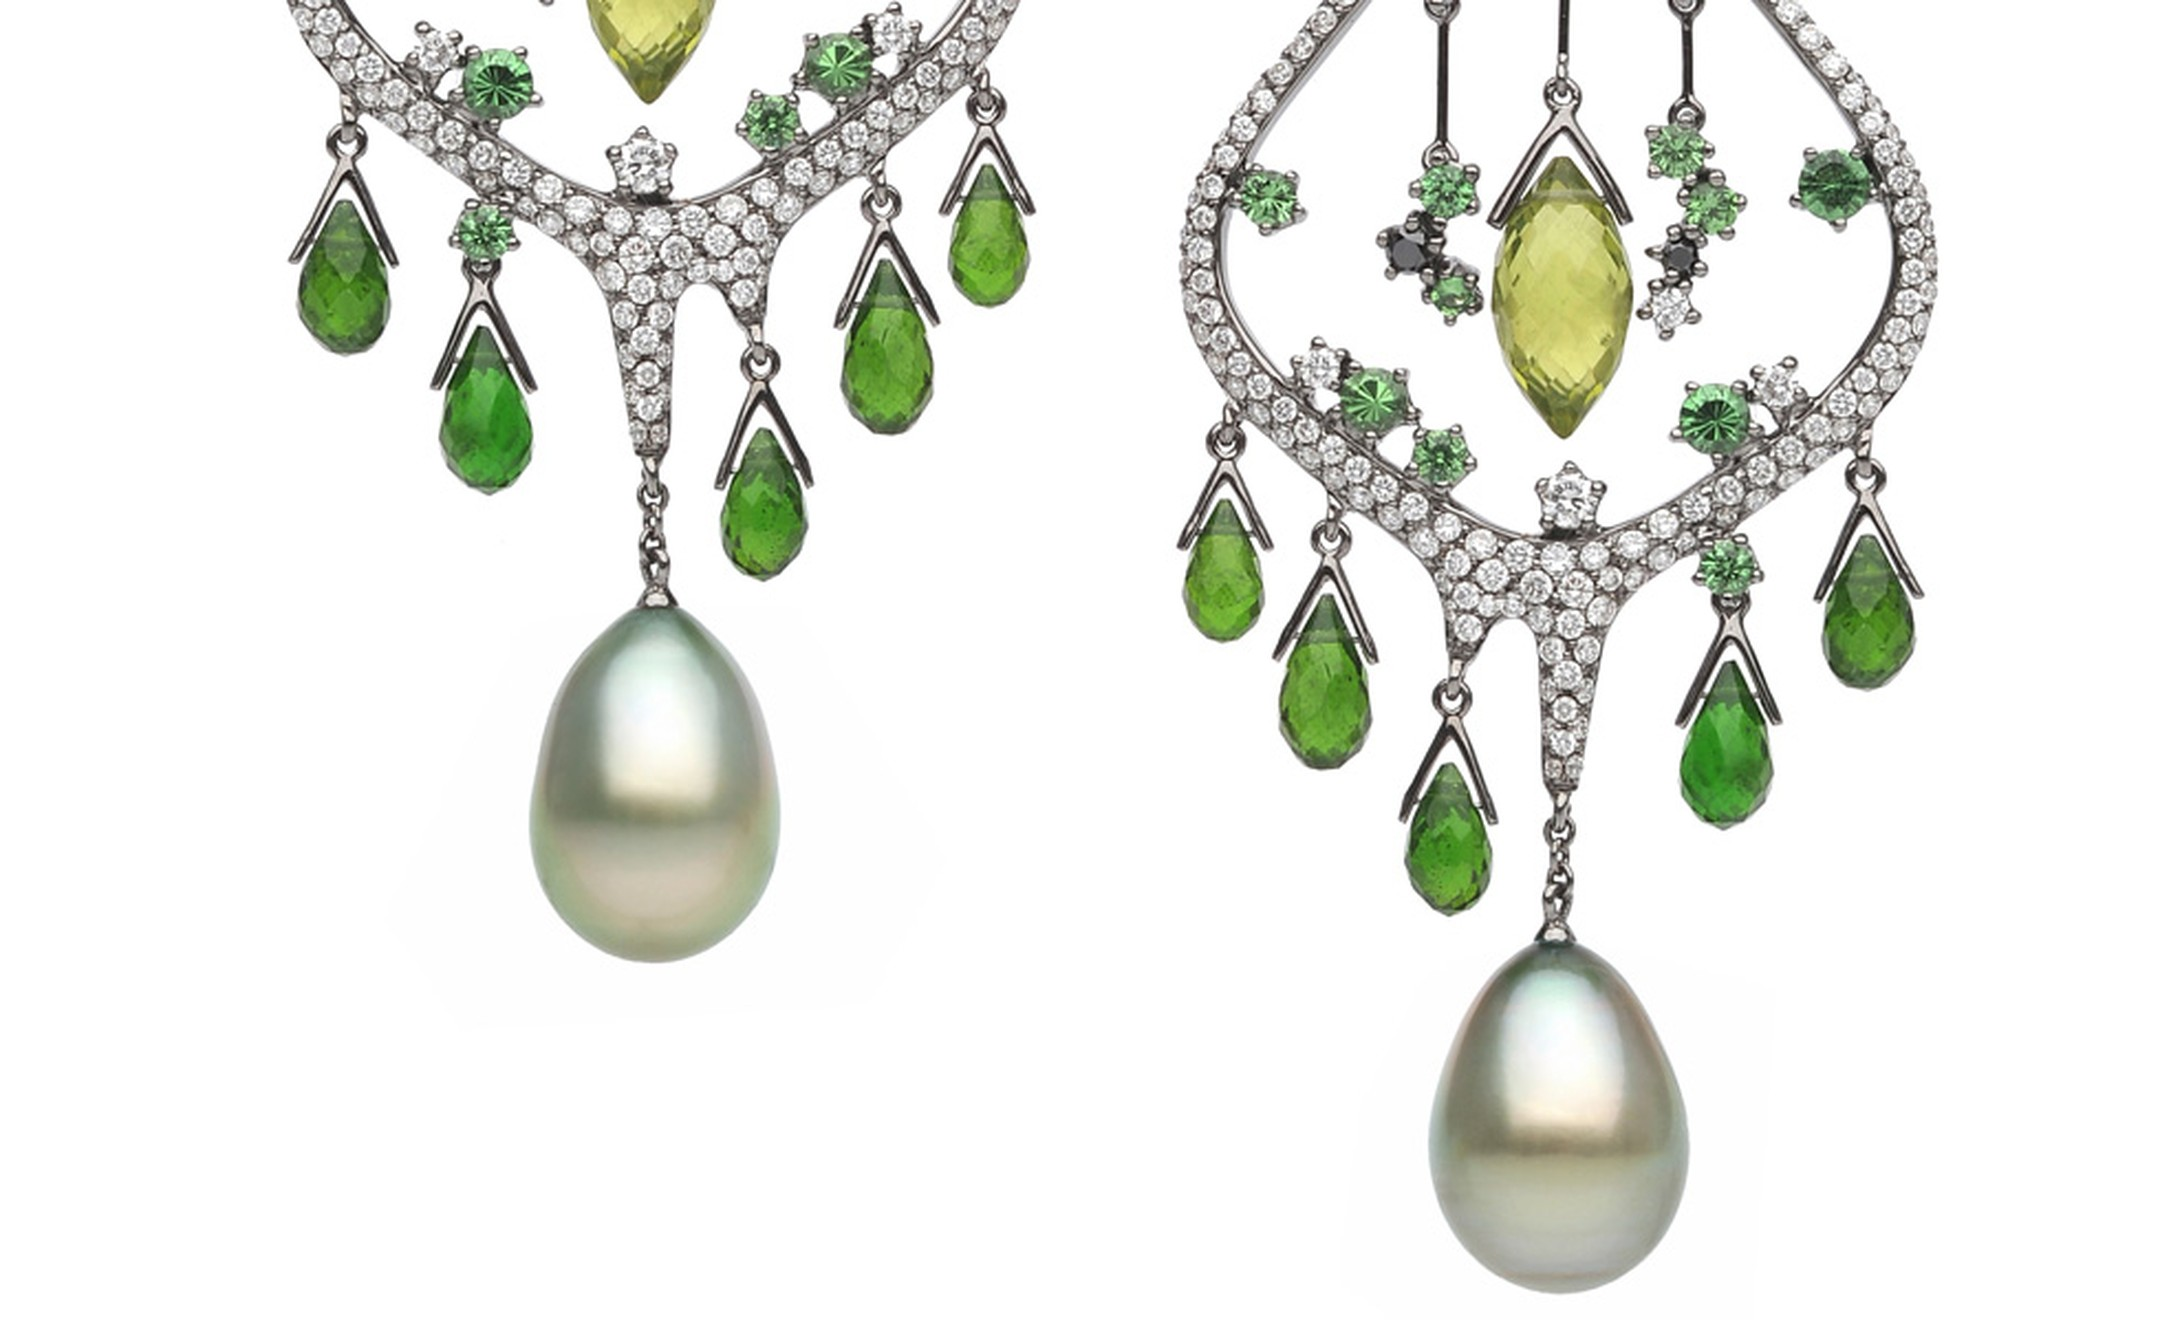 Tender green buds pierce through the thaw are the inspiration for these Autore, Fire & Ice Advent of Spring earrings in white gold, with Tahitian South Sea pearls, tsavorite garnets, chrome diopside, peridot and black and white diamonds. $62,000 AUD